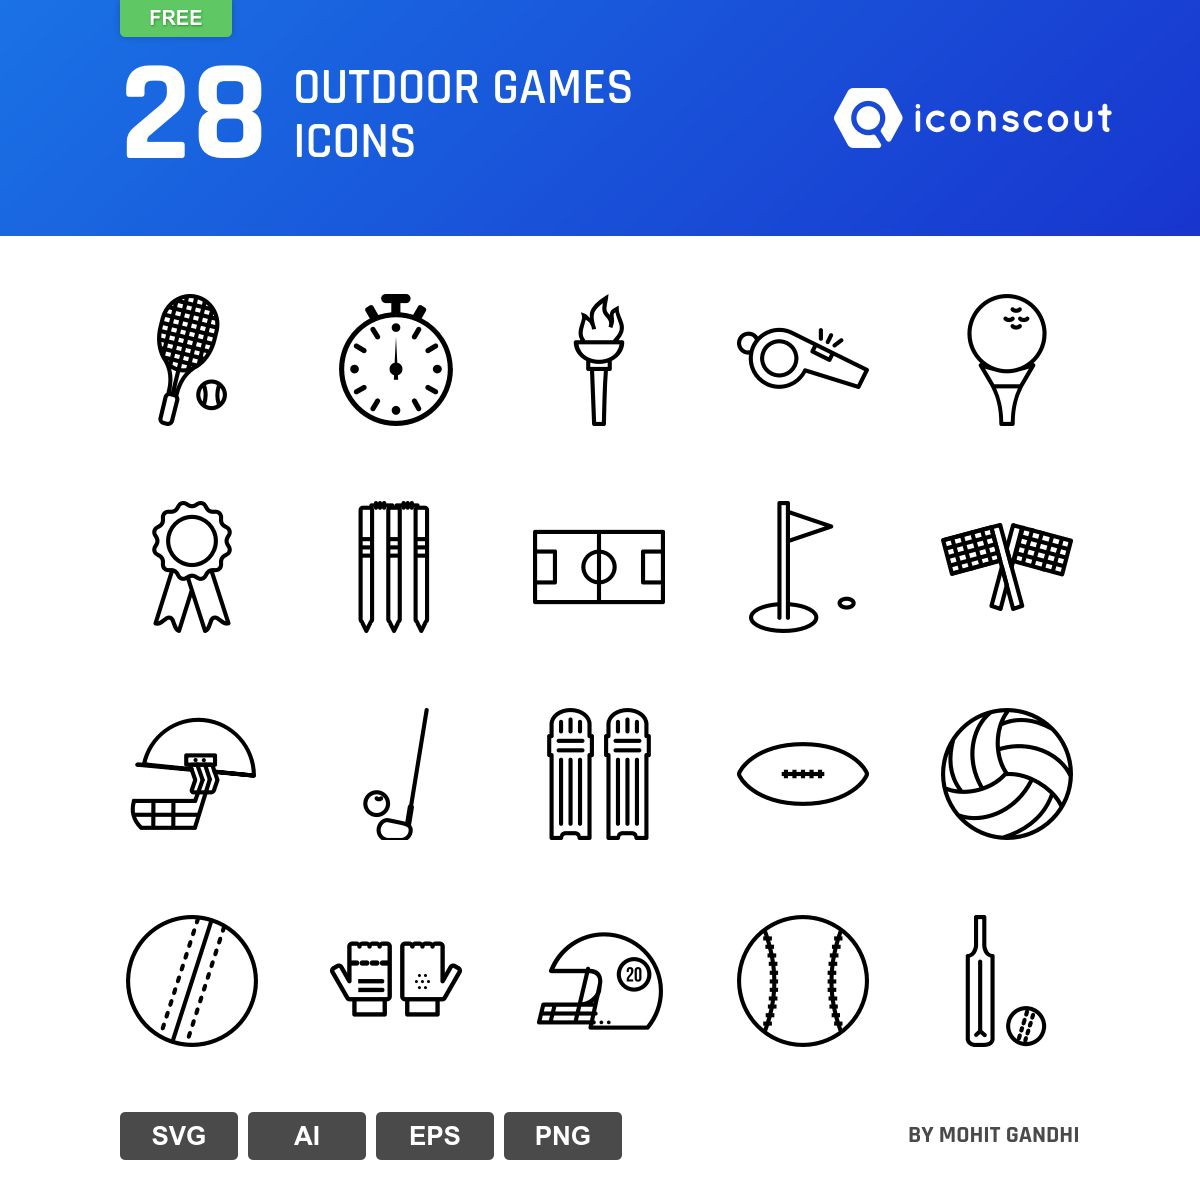 Outdoor Games icons by Mohit Gandhi